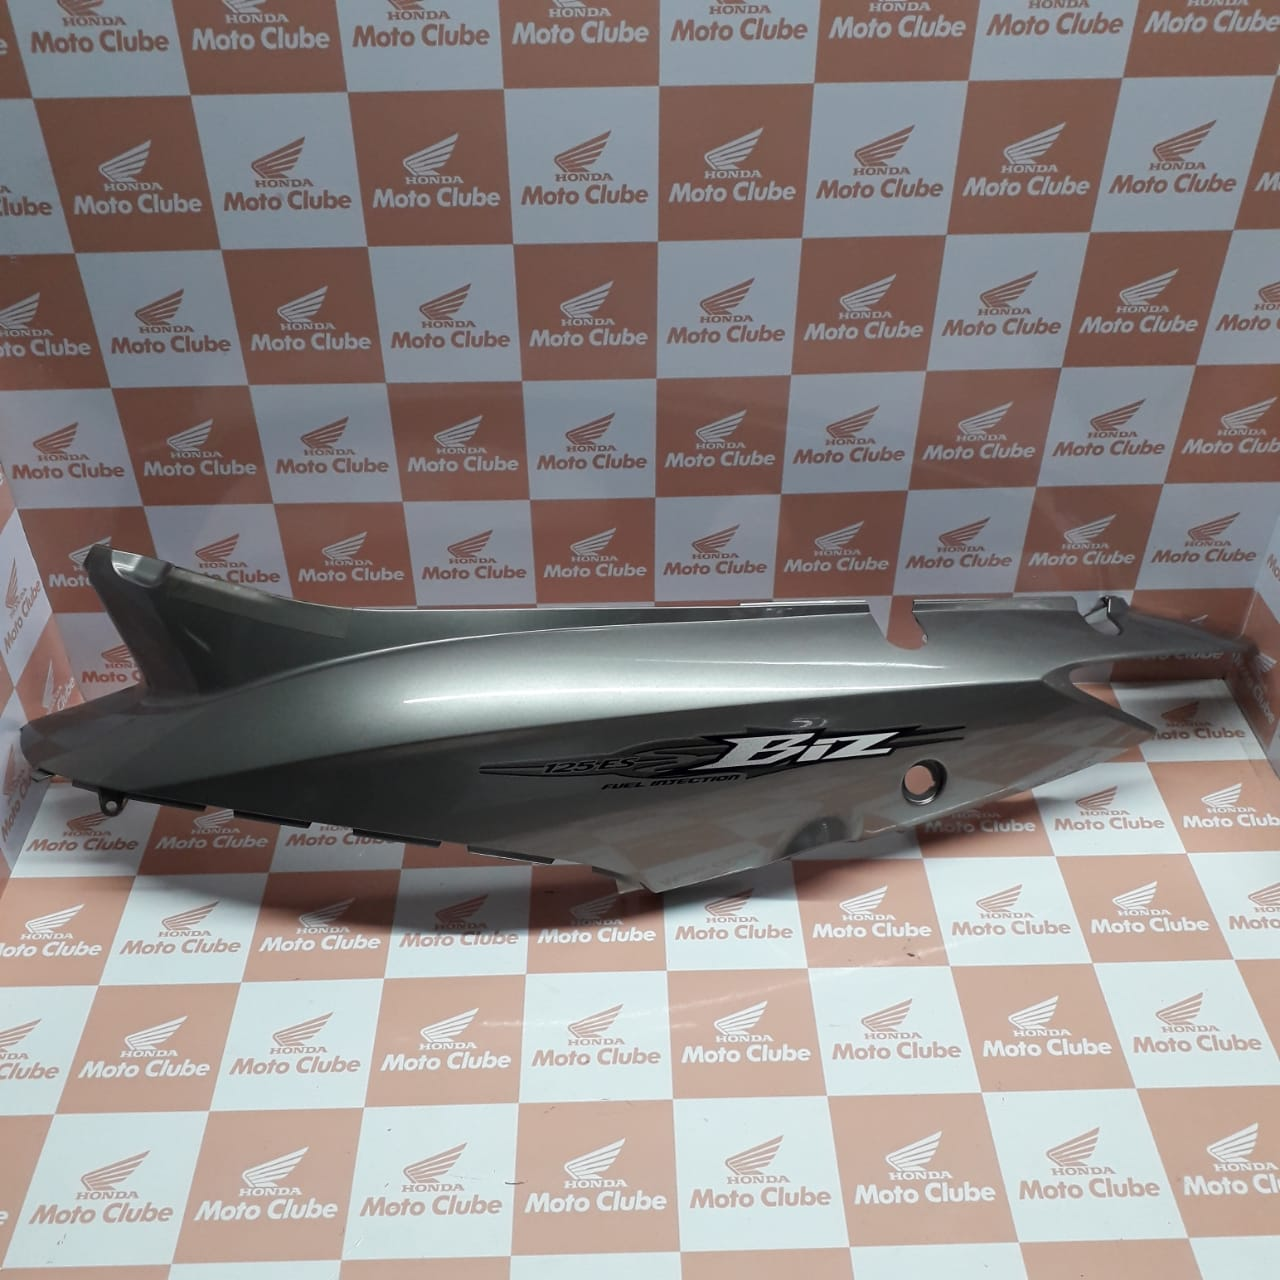 Carenagem Lateral Direita BIZ 125 ES 2009 Original Honda 64410KSSB30ZD